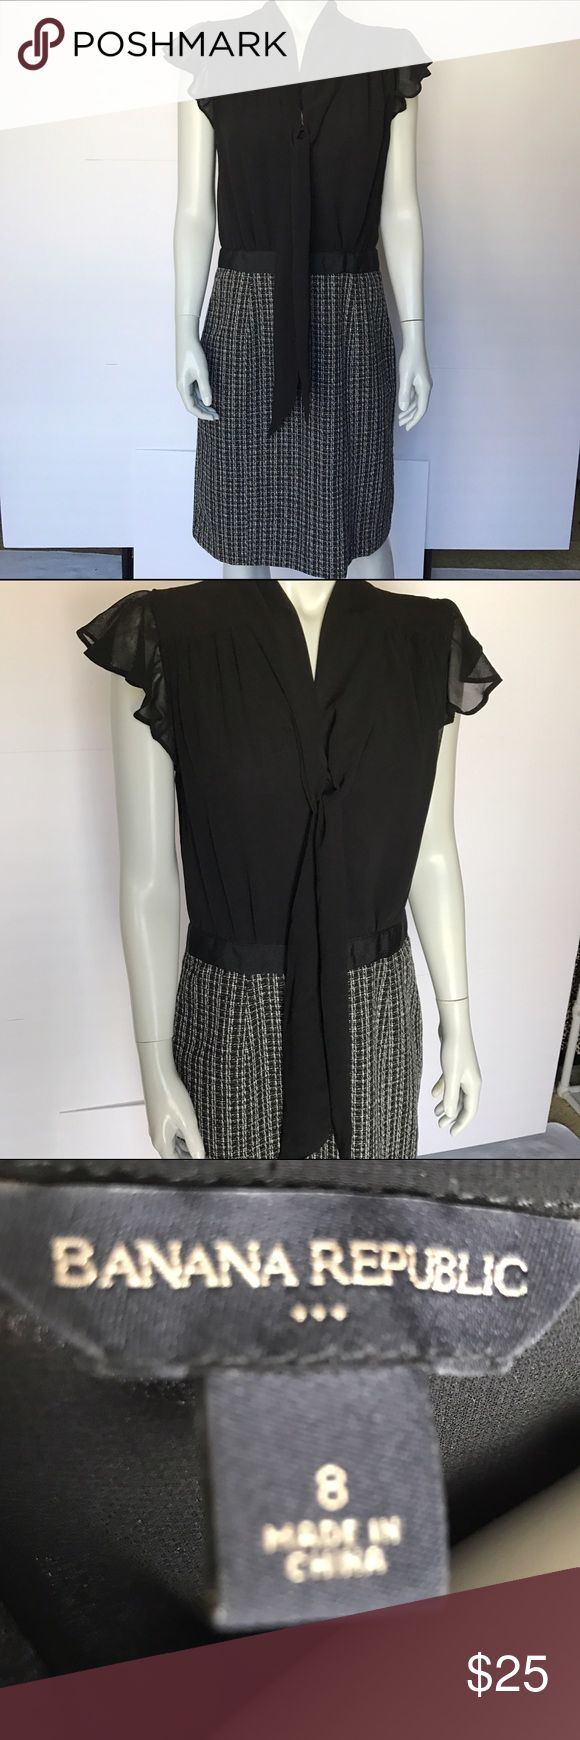 Banana Republic black and white dress Gorgeous short sleeve dress! Black chiffon material at the top - ties at the bust. Comes in at the waist for a feminine, flattering fit. On the bottom part, it is a different texture with black and white pattern. Excellent dress for professional work settings or for other occasions. Banana Republic Dresses Midi